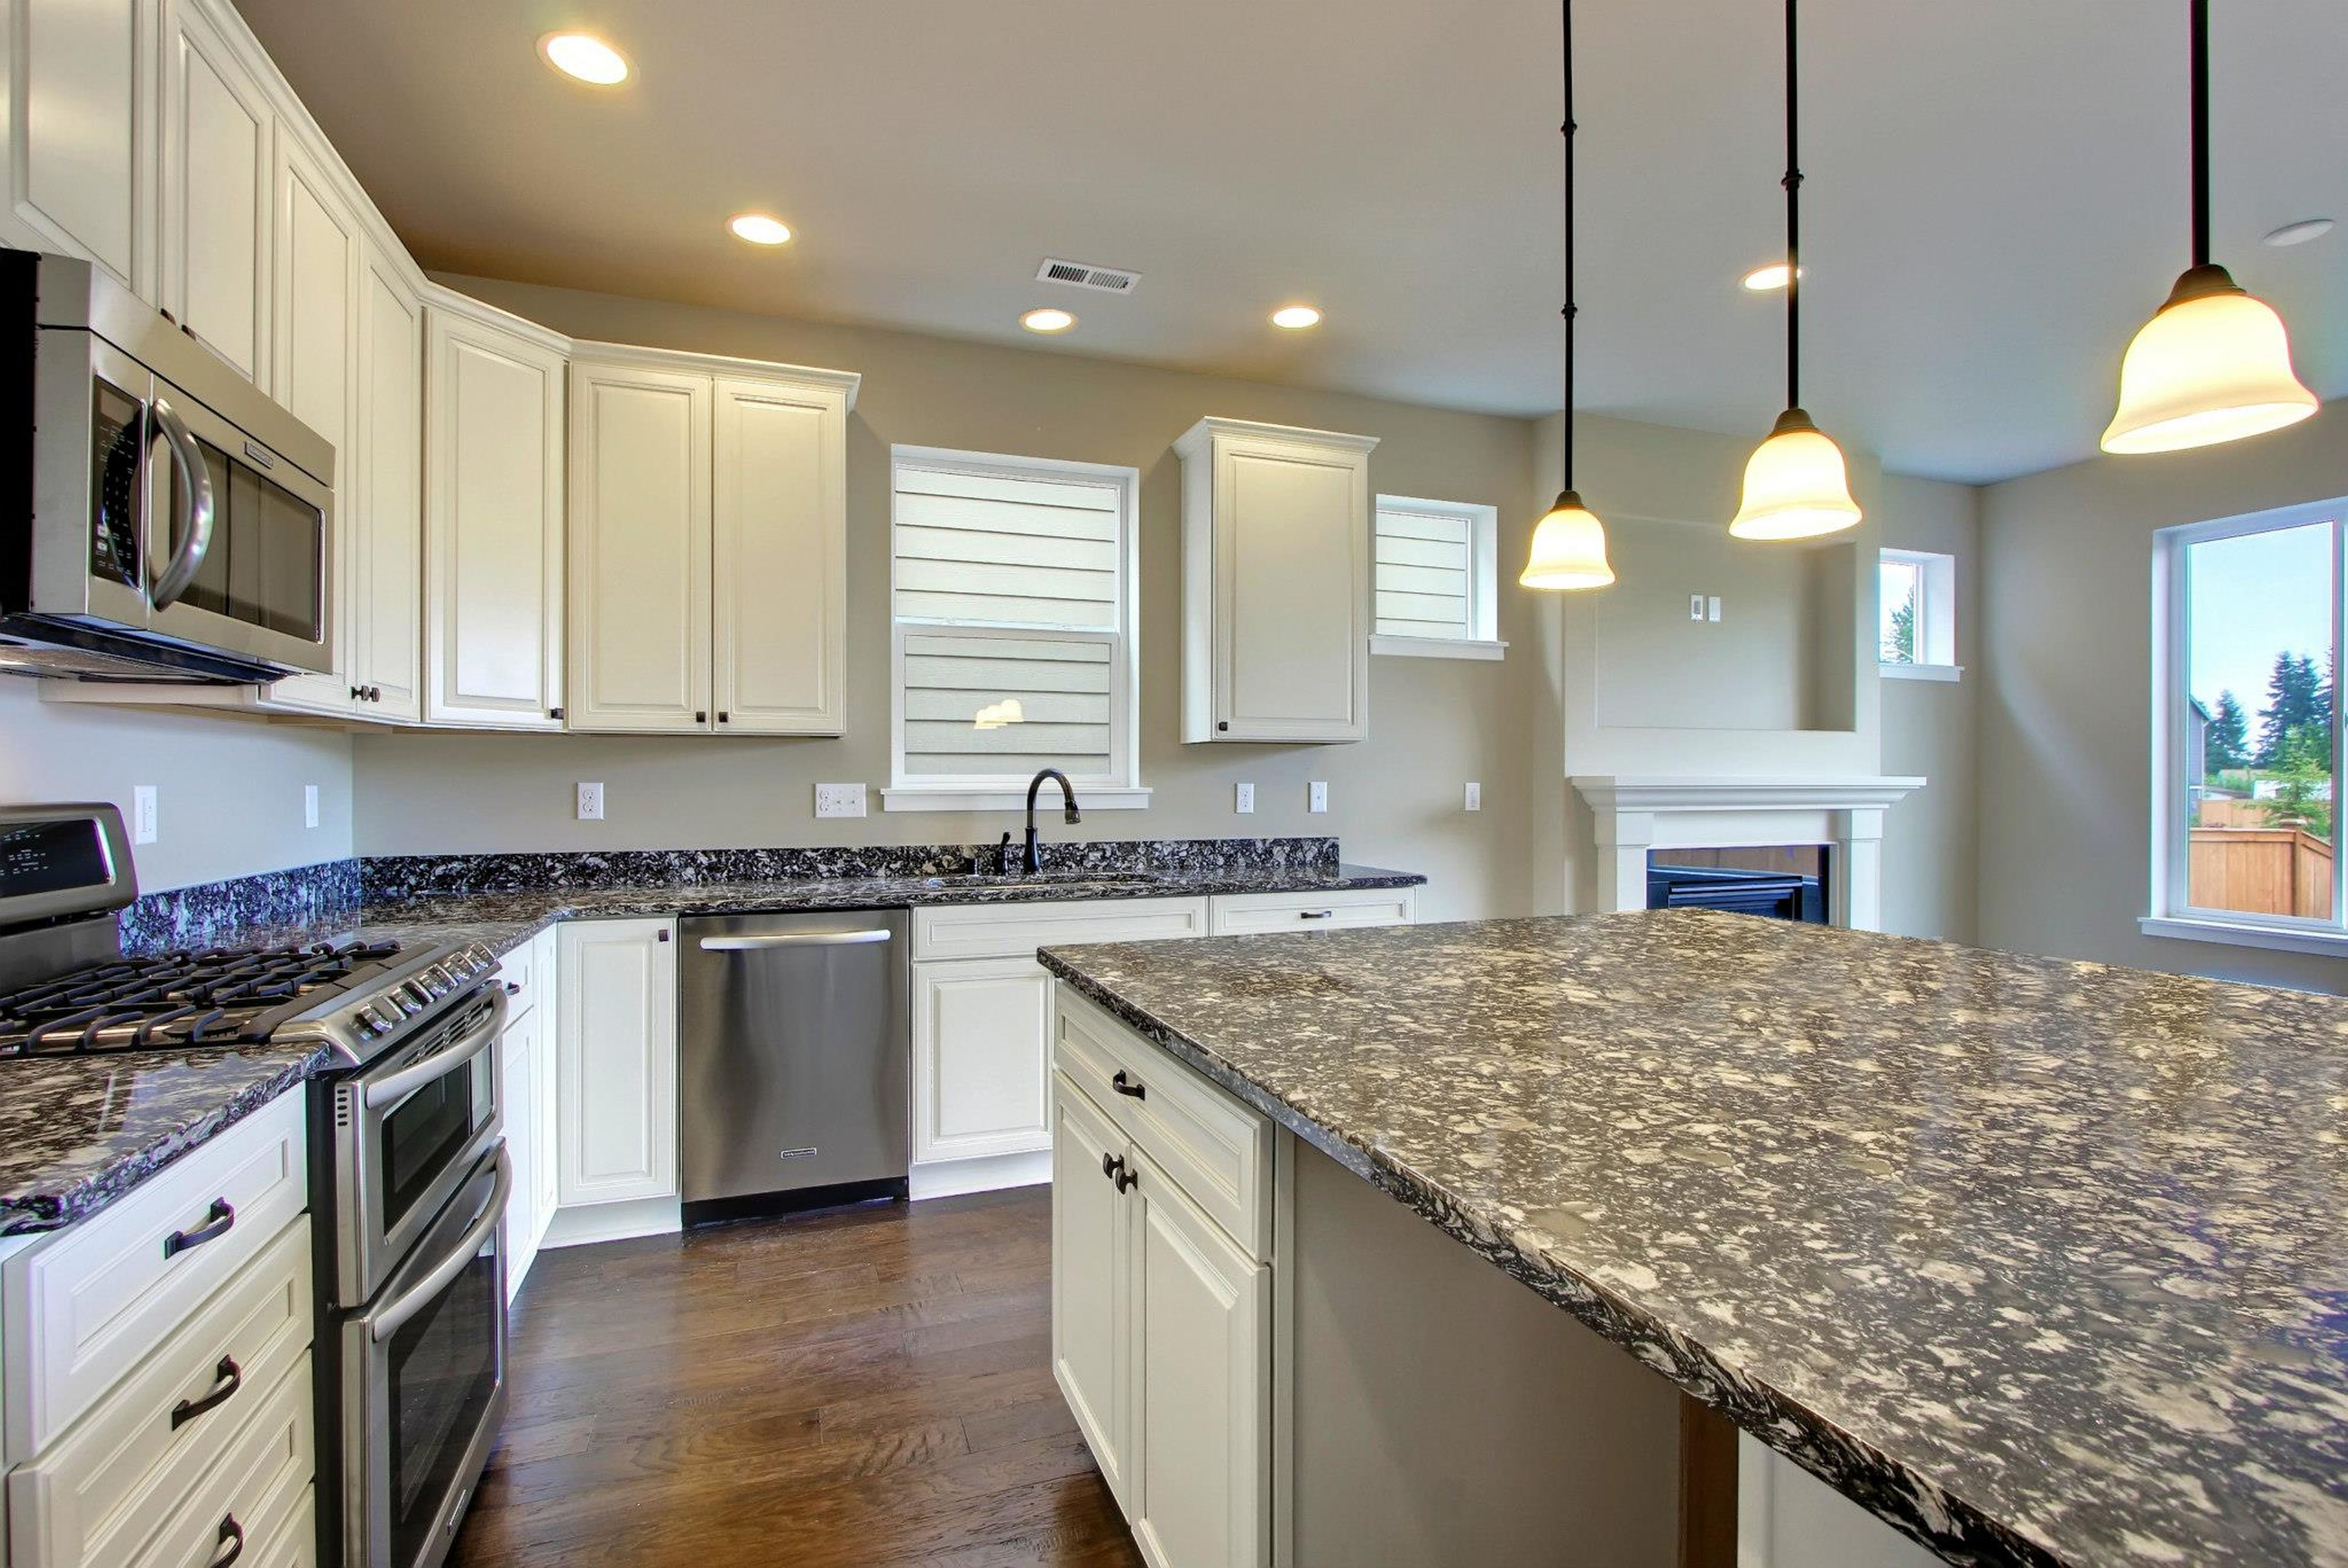 Best Creamy White Color For Kitchen Cabinets